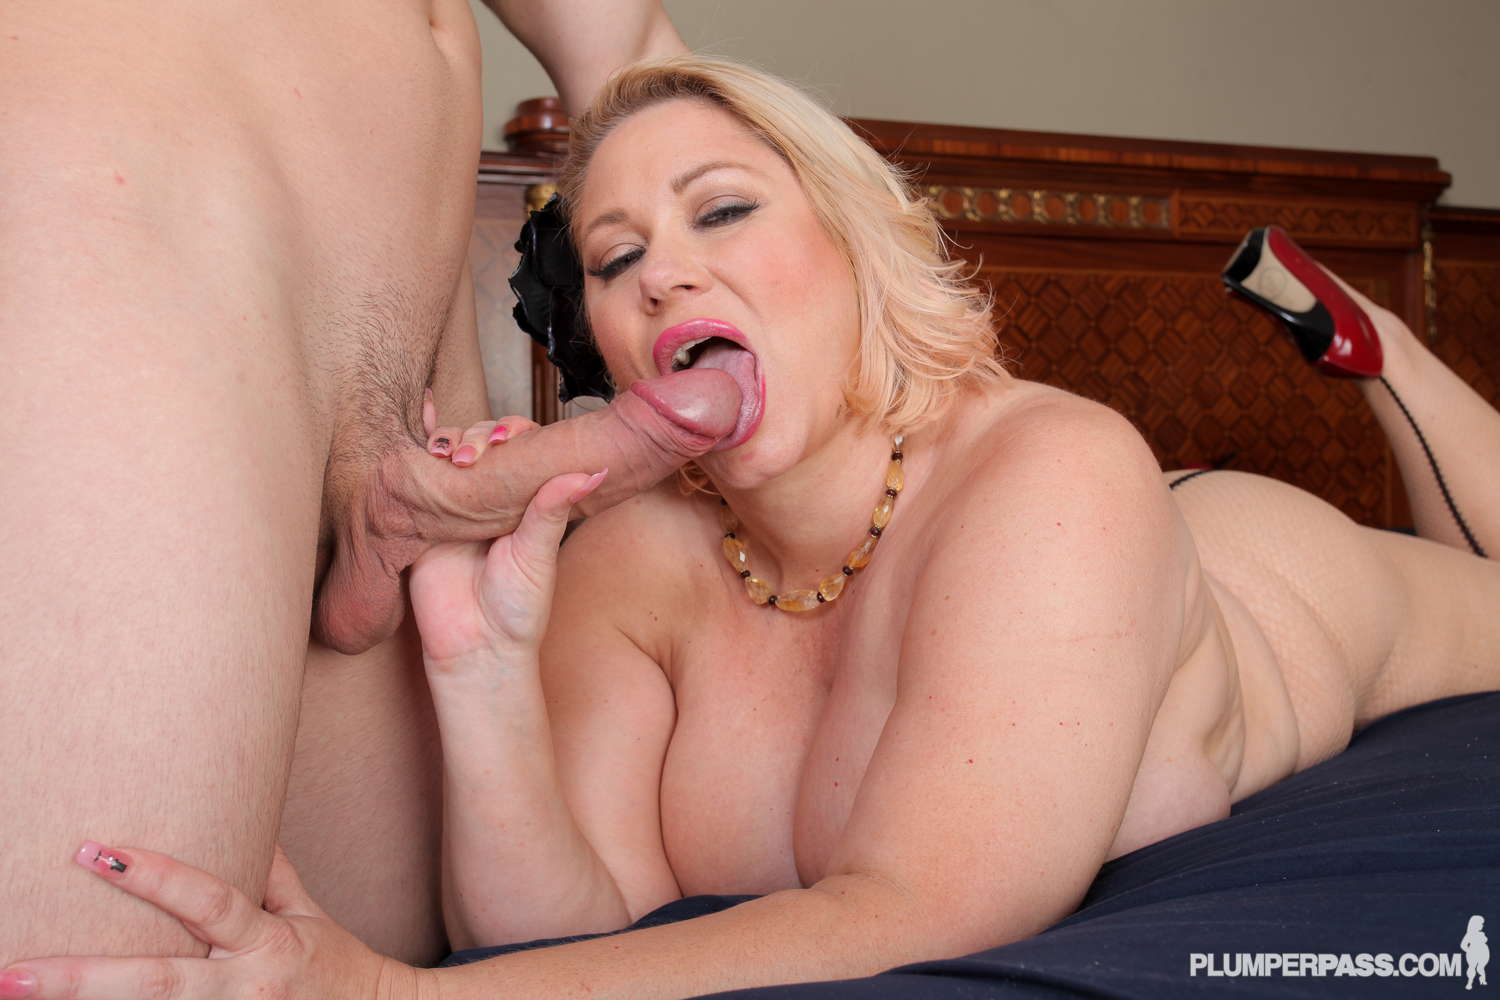 Samantha with big tits cant walk away from this horny guy 7